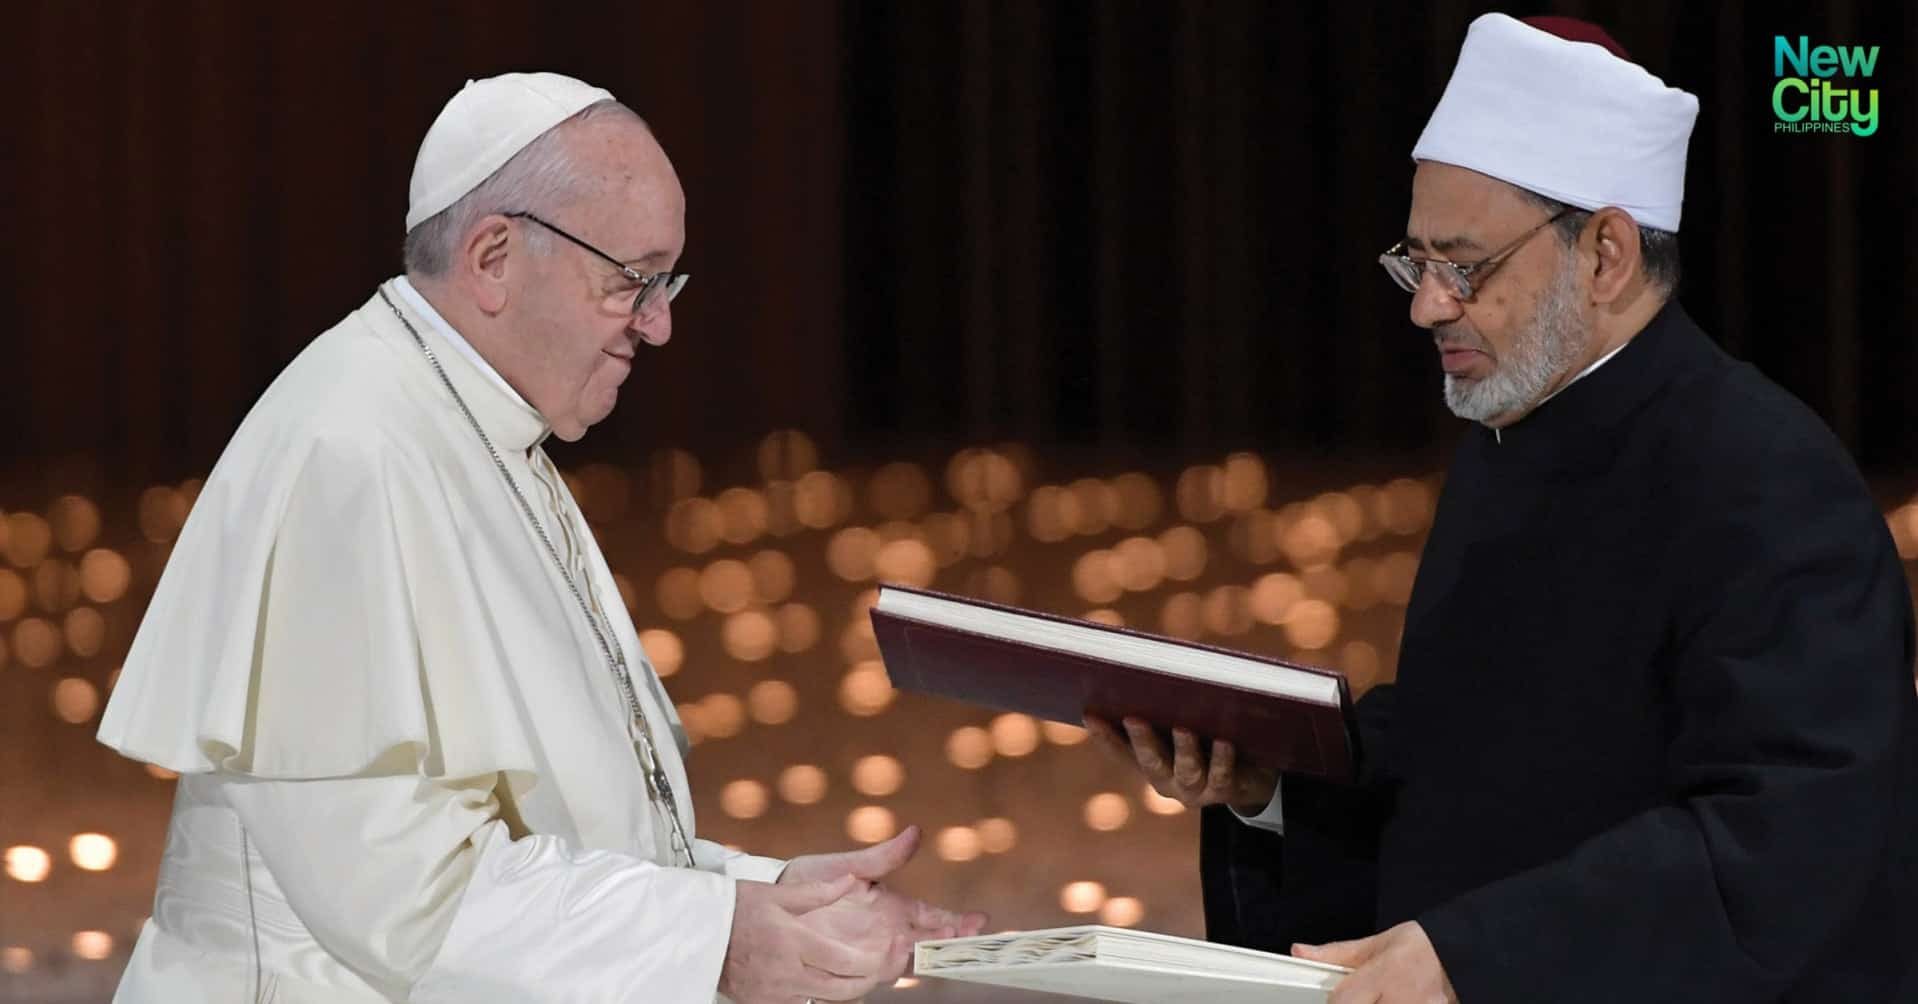 A moment of the signing of the Document on Human Fraternity by Pope Francis and the Grand Imam of Al-Azhar, Ahmed Al-Tayeb;